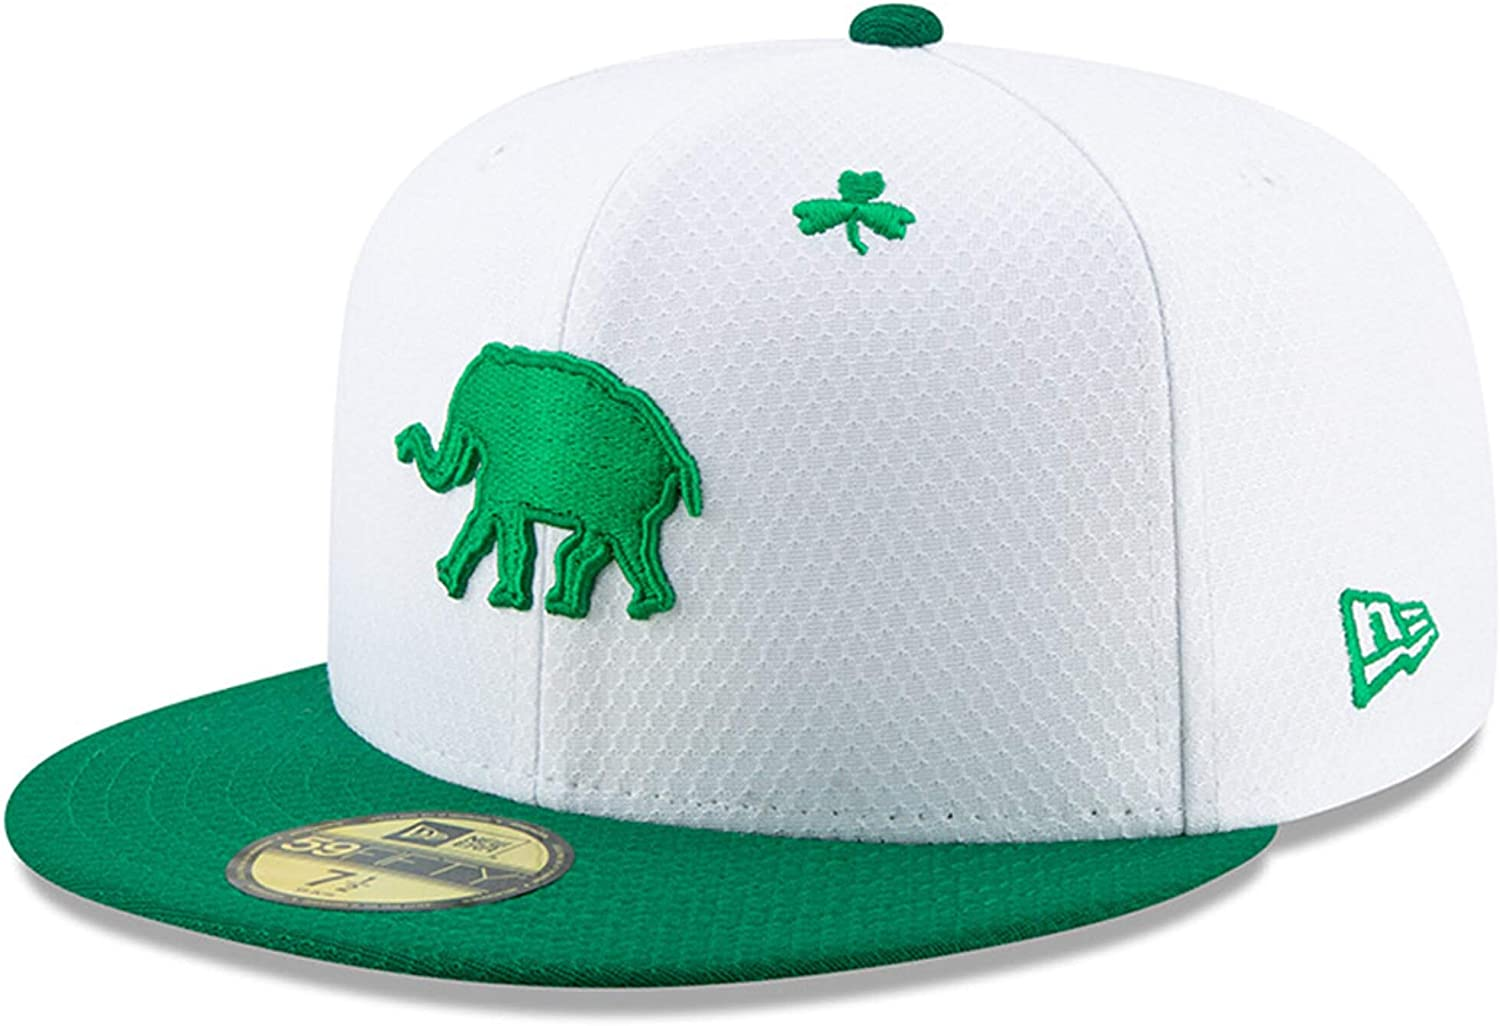 New Era Oakland Athletics 2019 St. Patrick's Day On-Field 59FIFTY Fitted Hat (6 7 8)